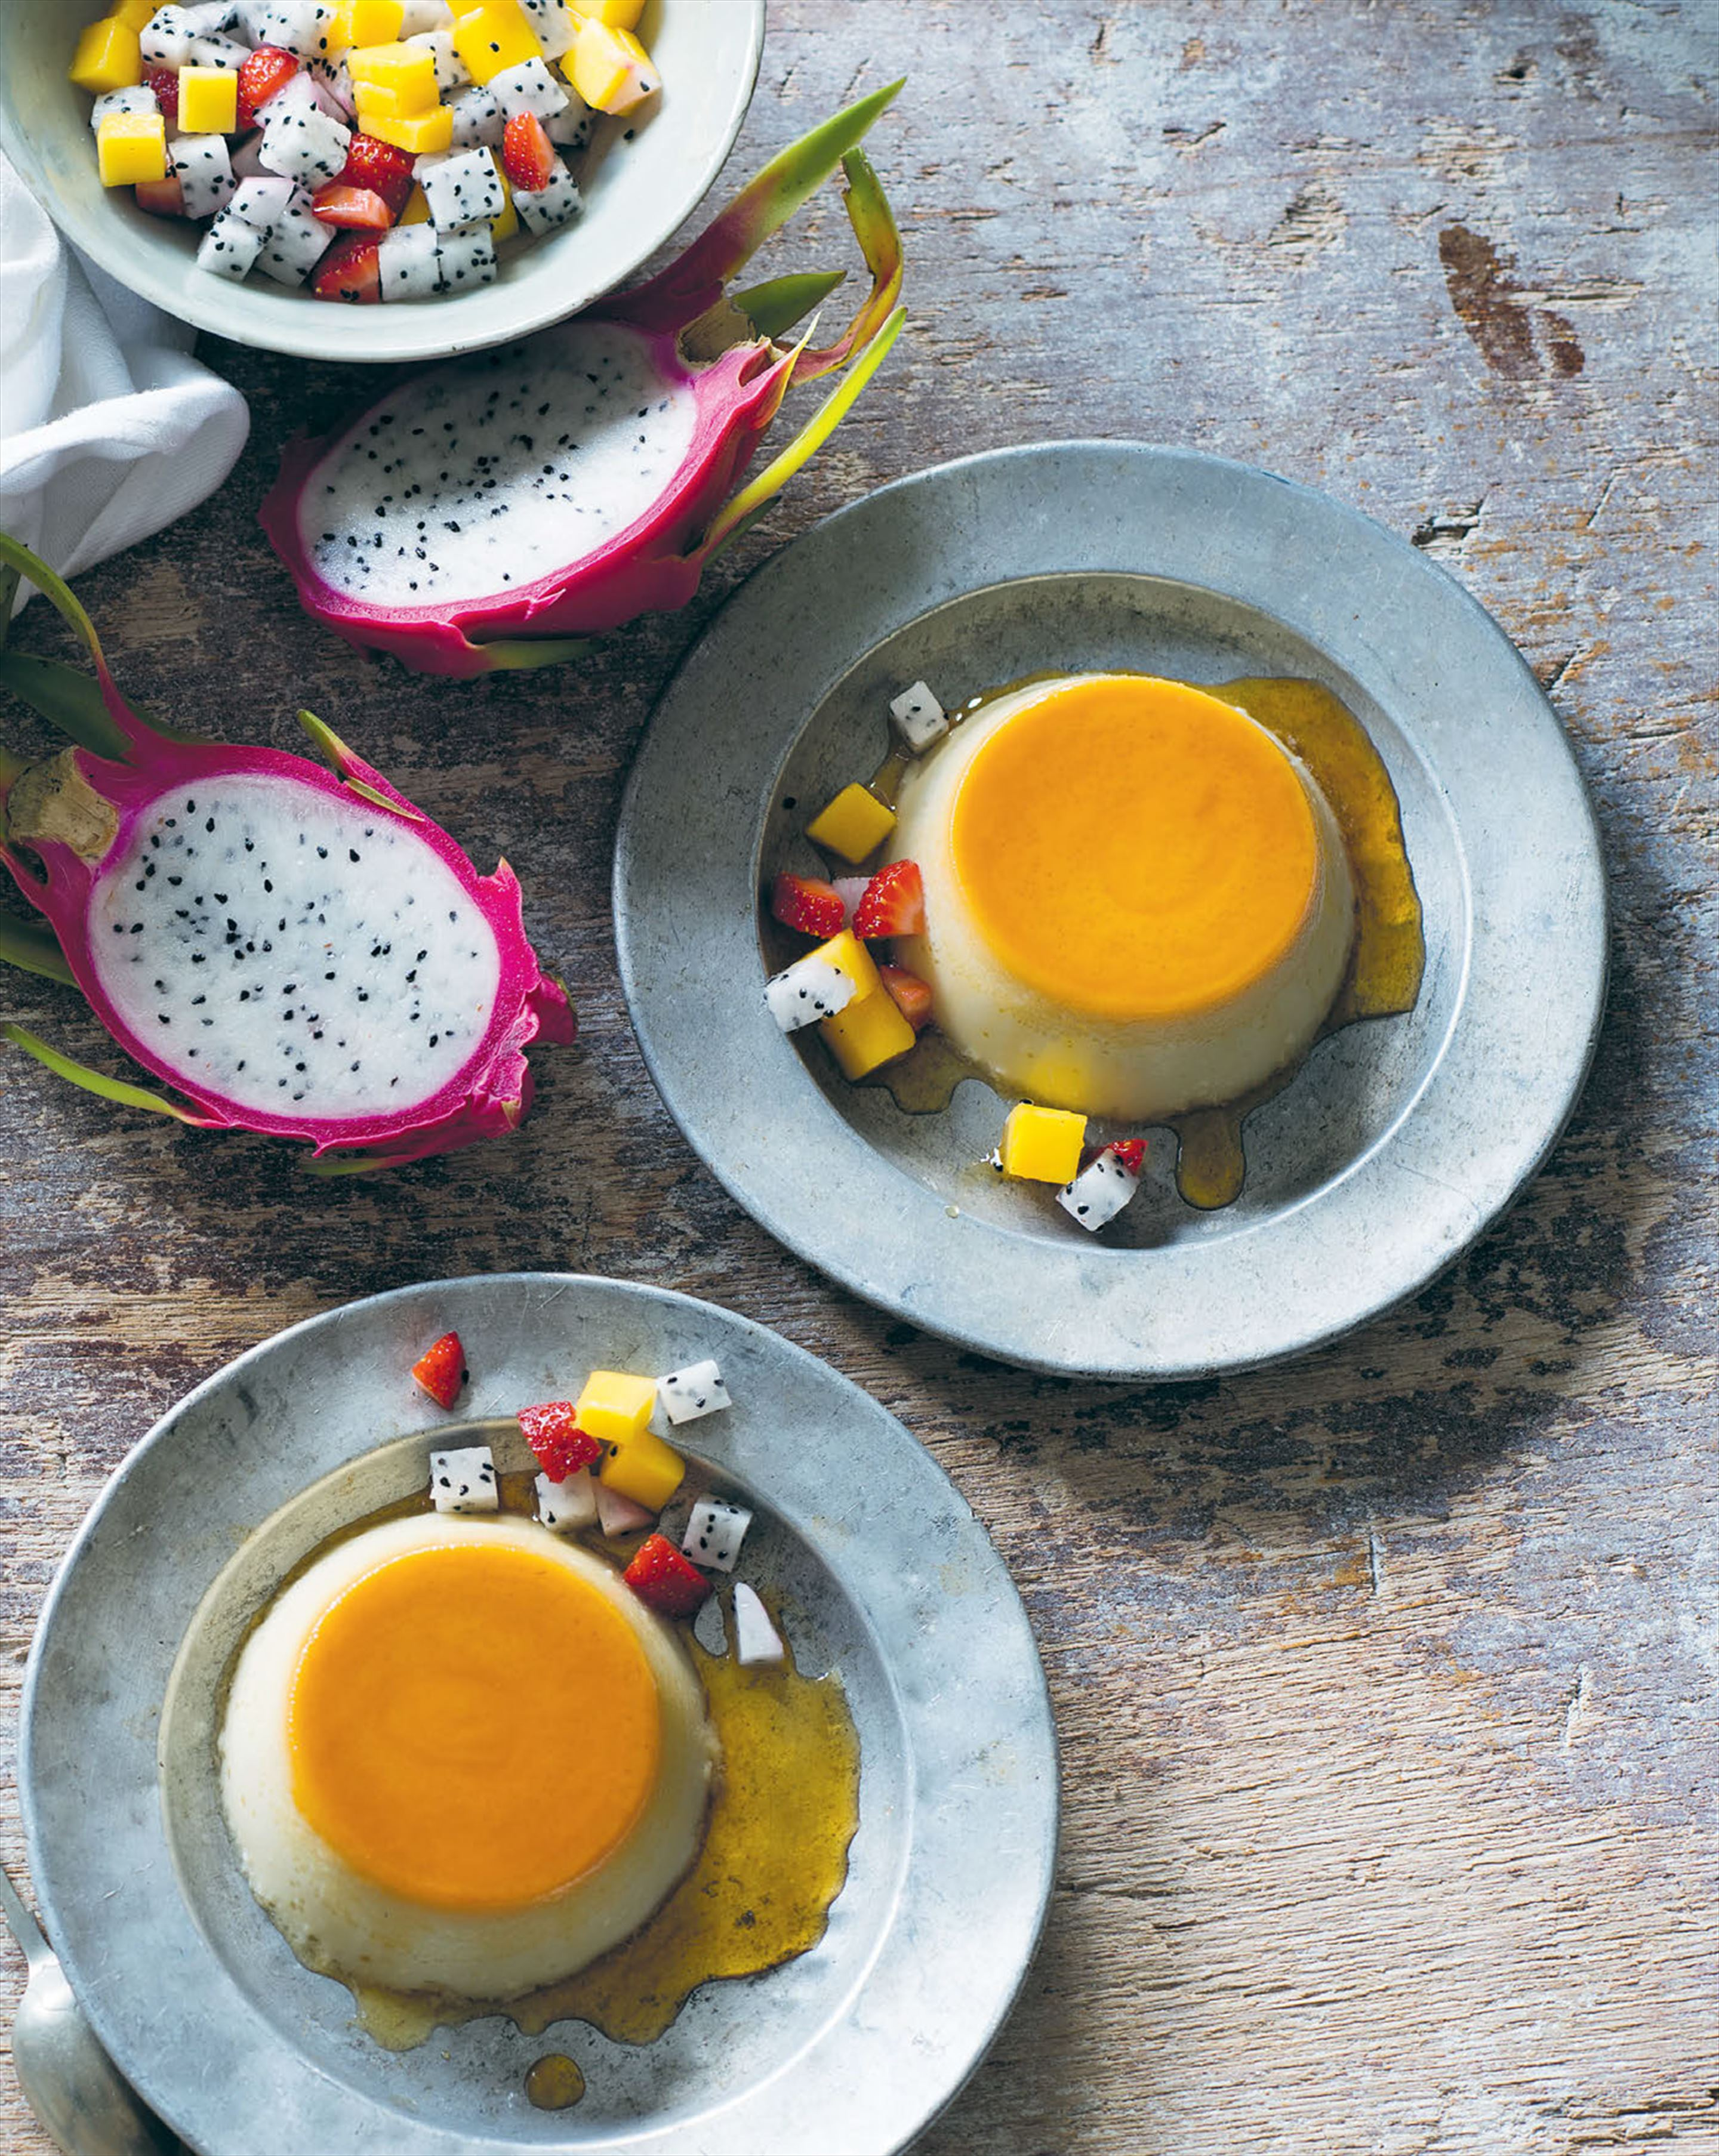 Coconut crème caramel with tropical fruits